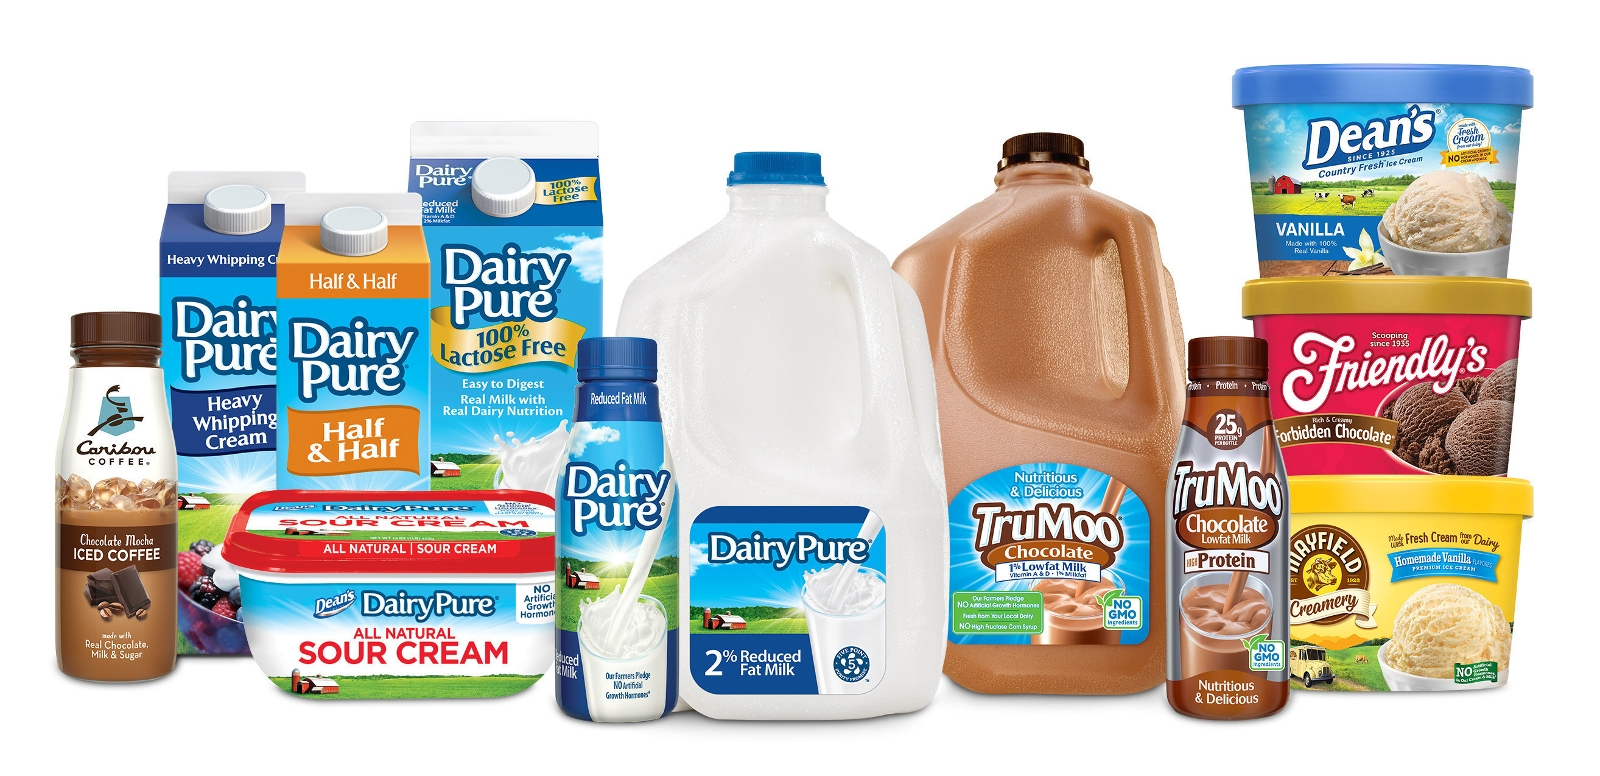 Dean Foods Is Recognized for Transforming the Dairy Category